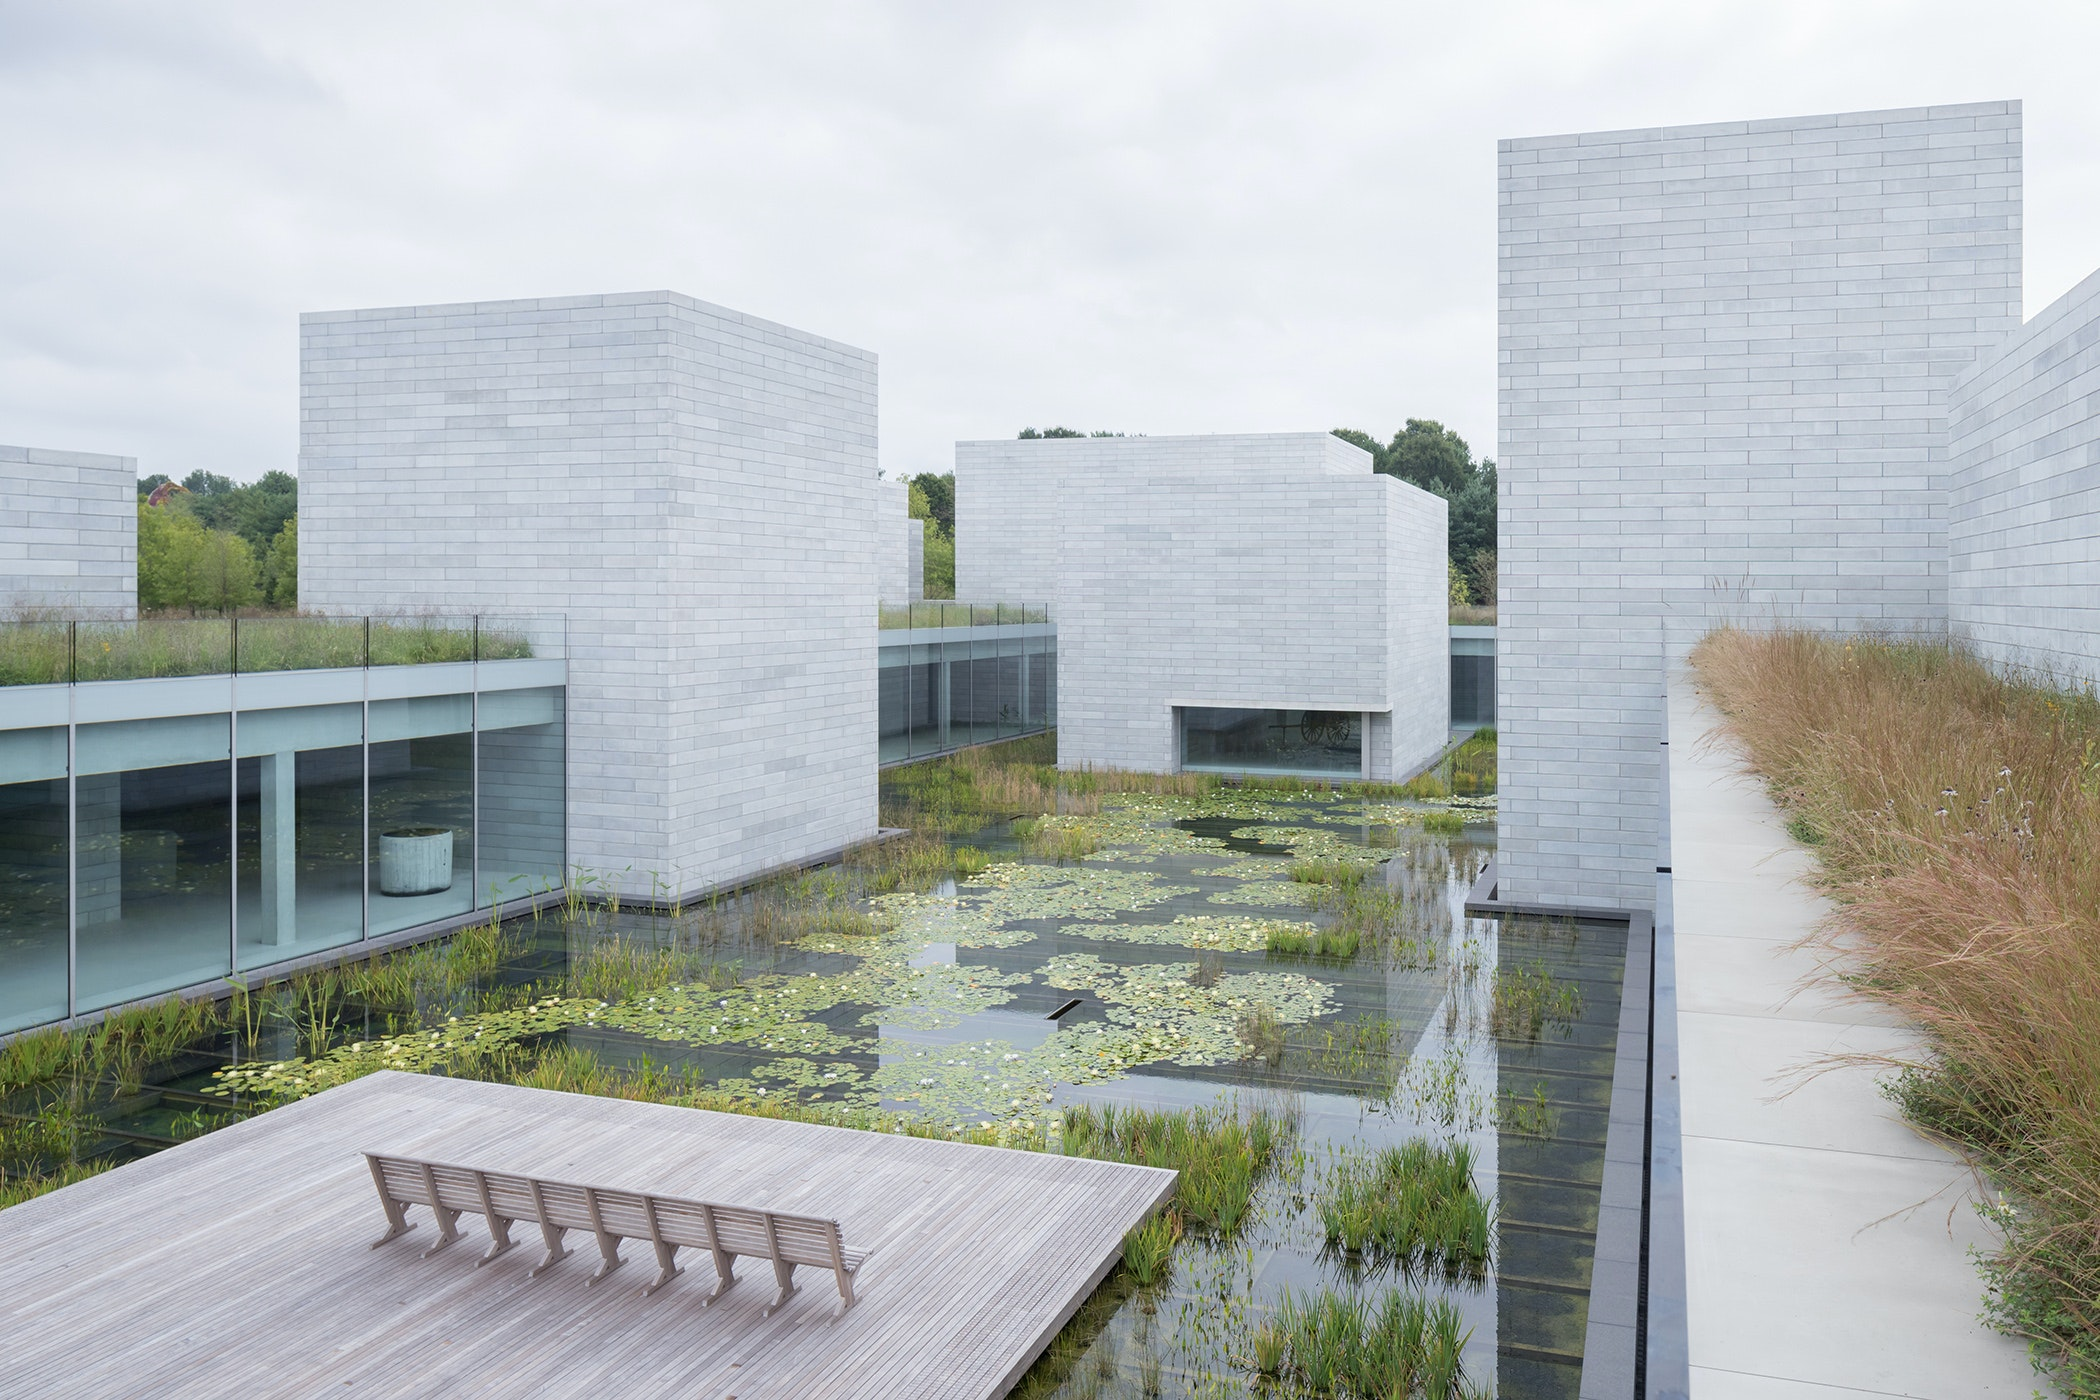 The Water Court's glass walls frame the surrounding landscape.